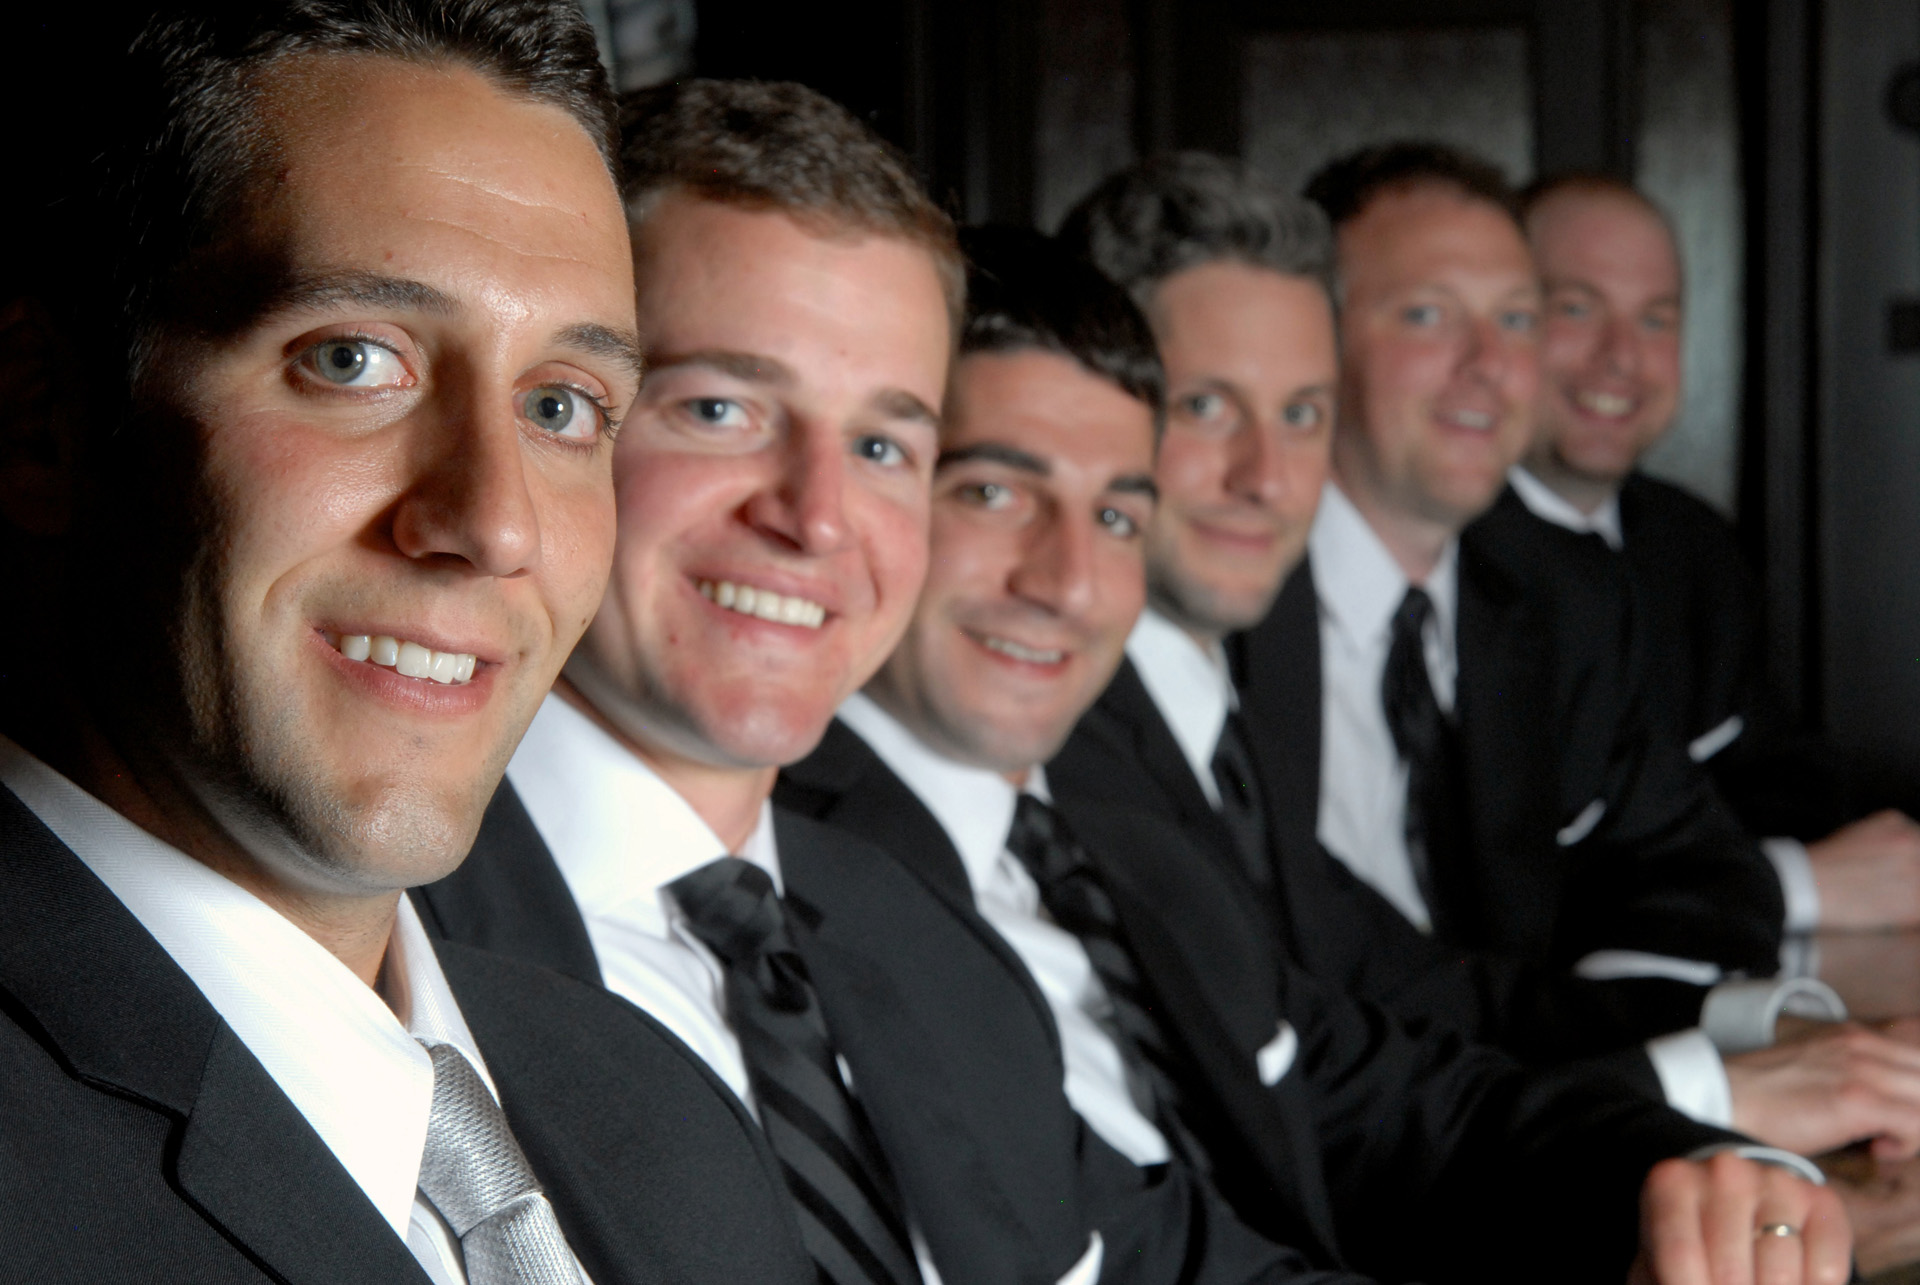 The The Dearborn Inn in Dearborn, Michigan wedding photographer's photo of the groom and his groomsmen waiting at the bar at Dearborn's historic Dearborn Inn for wedding photos in Dearborn, Michigan.